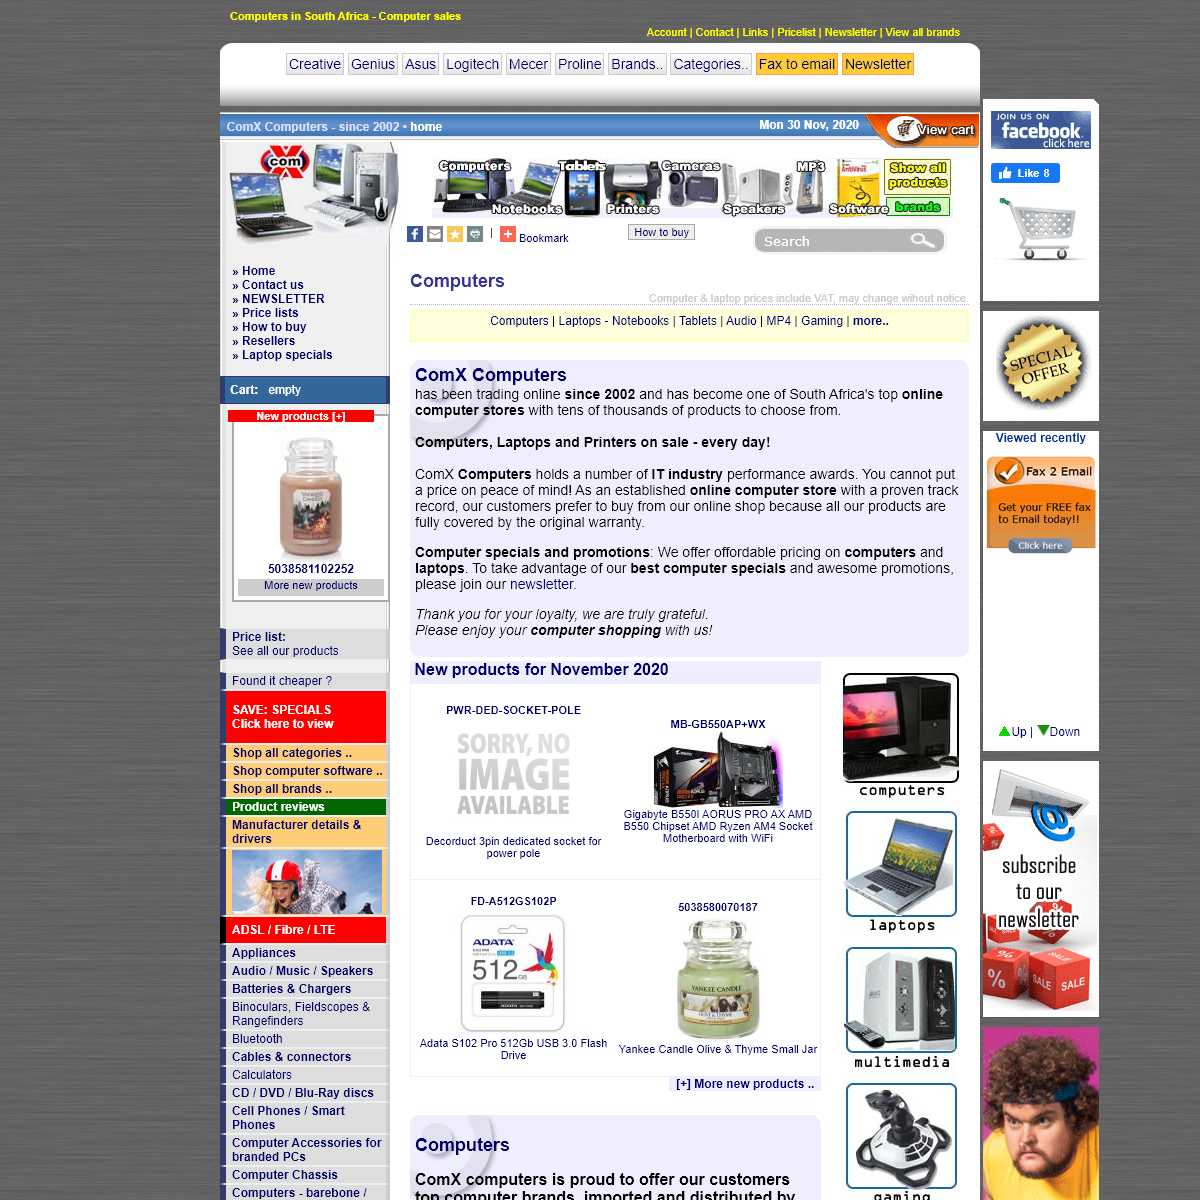 Computers! Online computer shop & notebook sales South Africa - Computers, laptops, notebooks and software sales. Computer sales